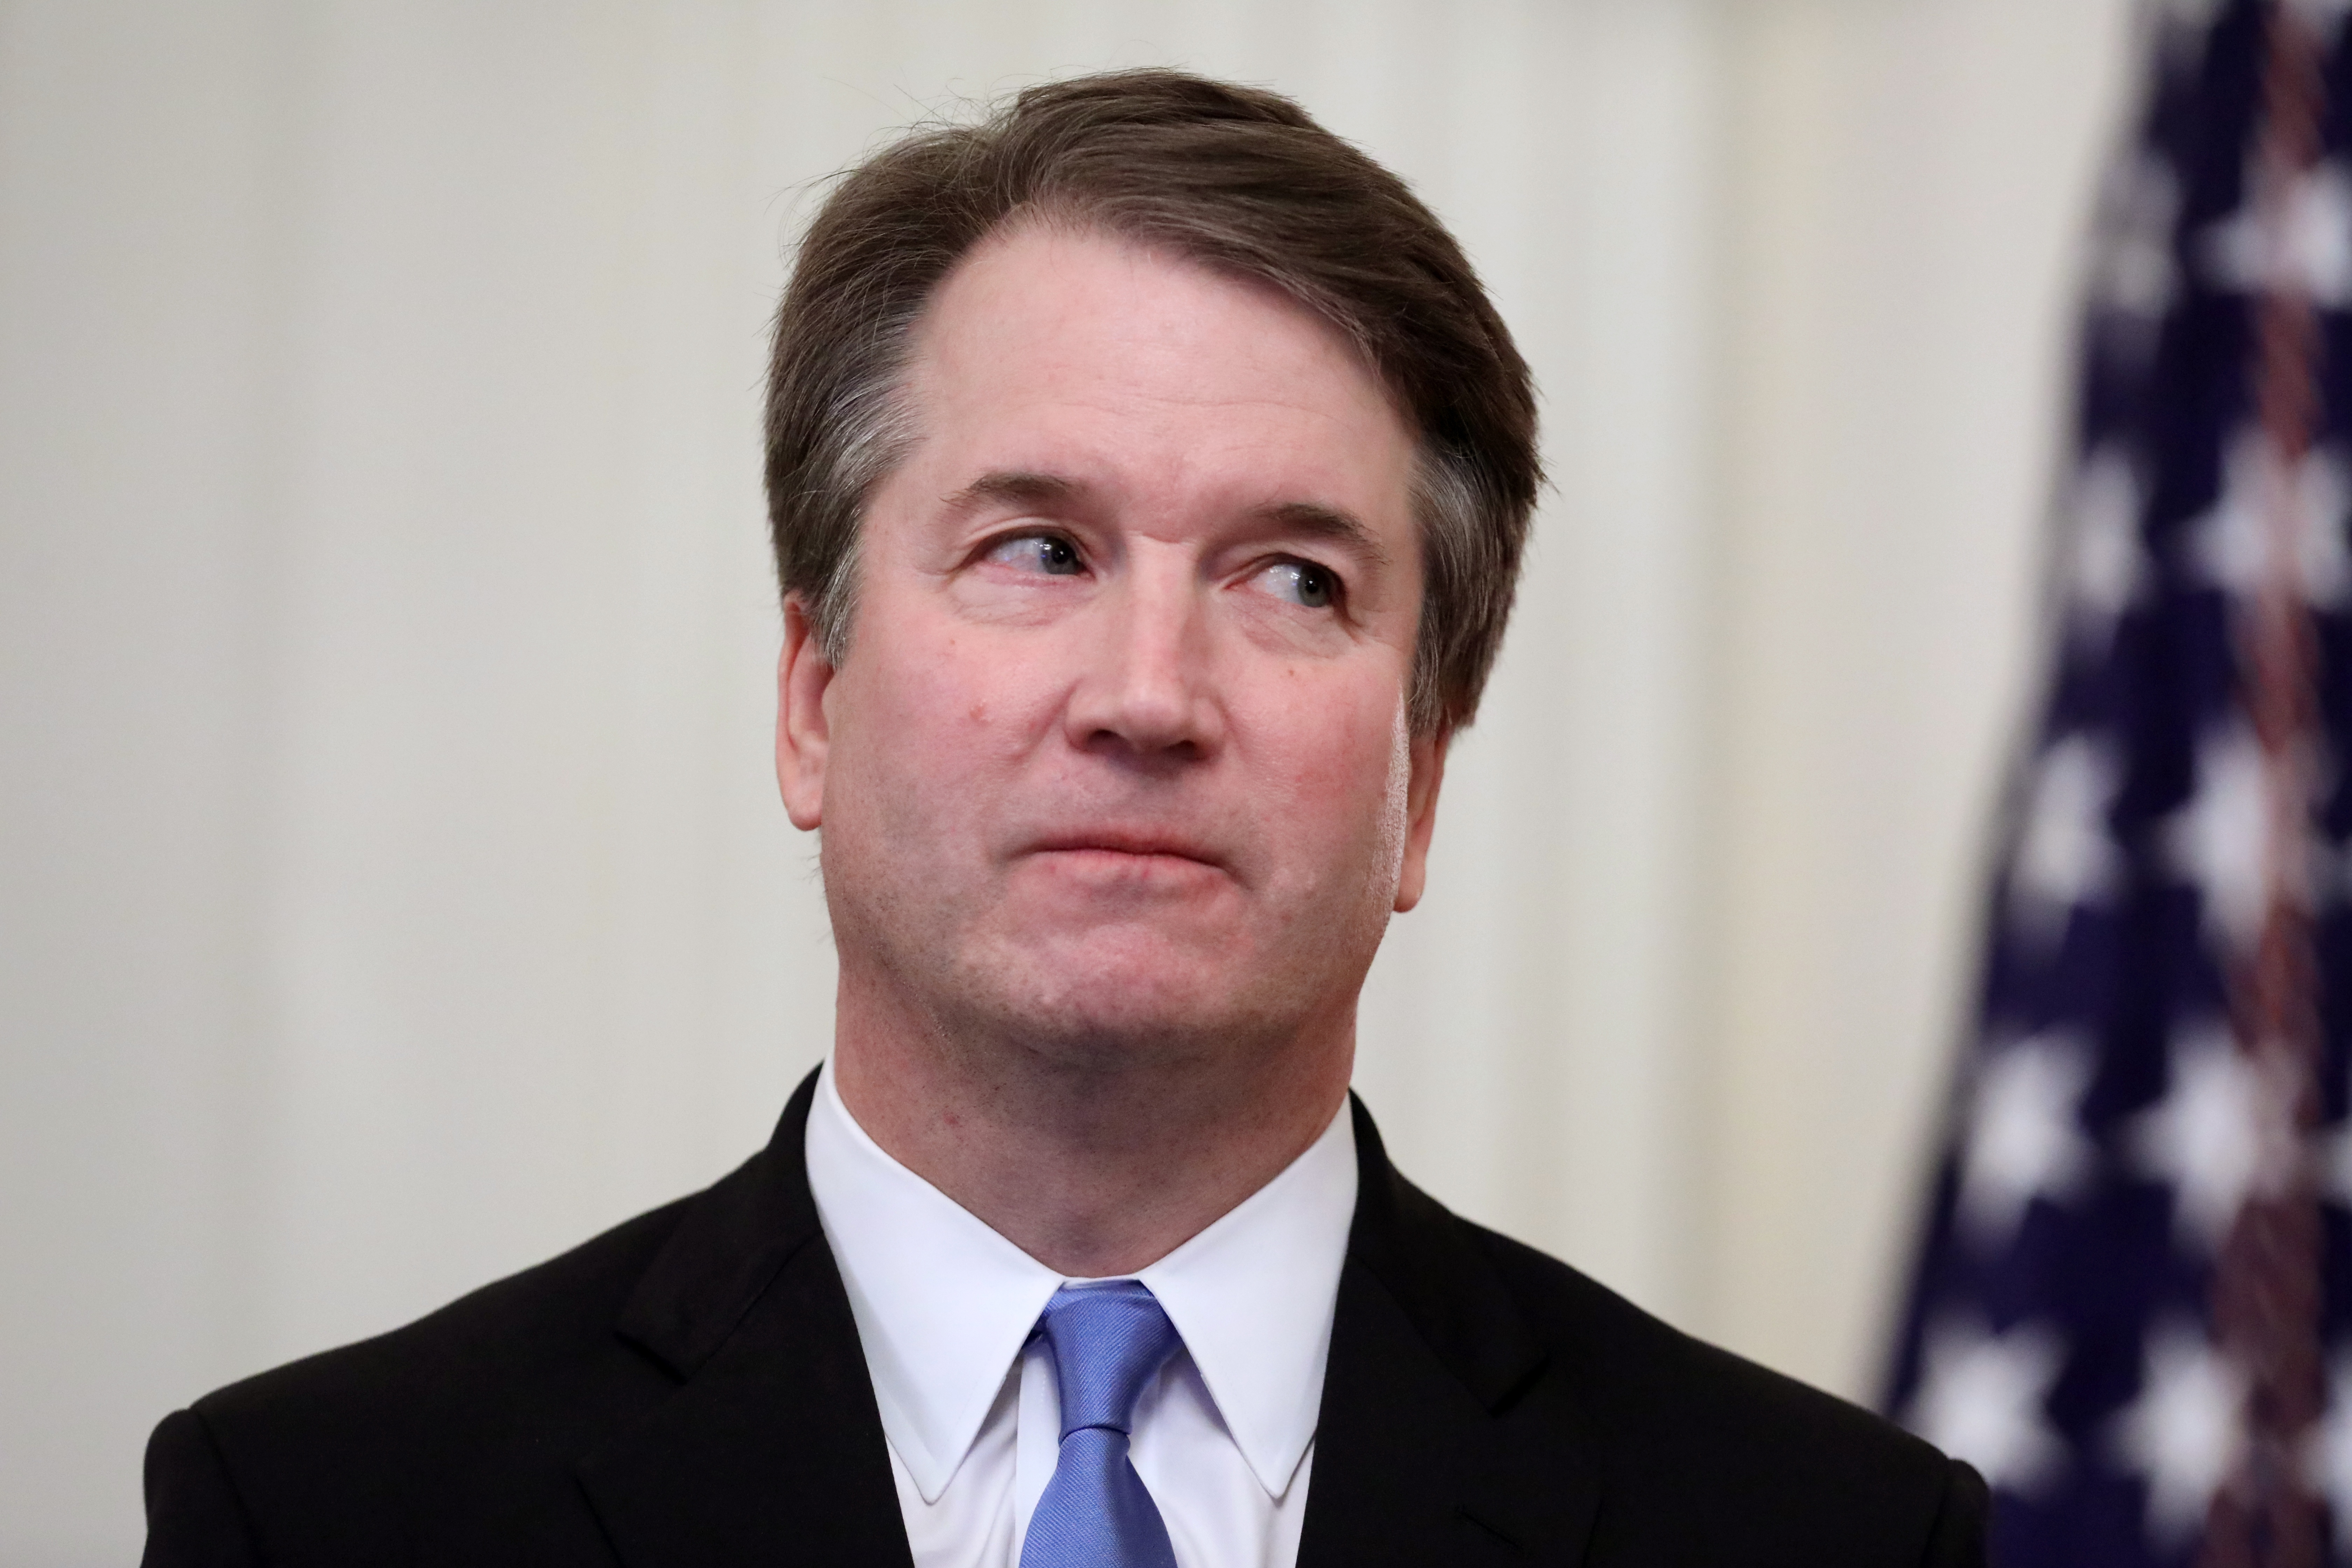 Justice Brett Kavanaugh attends his ceremonial swearing at the White House on October 8, 2018. (Chip Somodevilla/Getty Images)